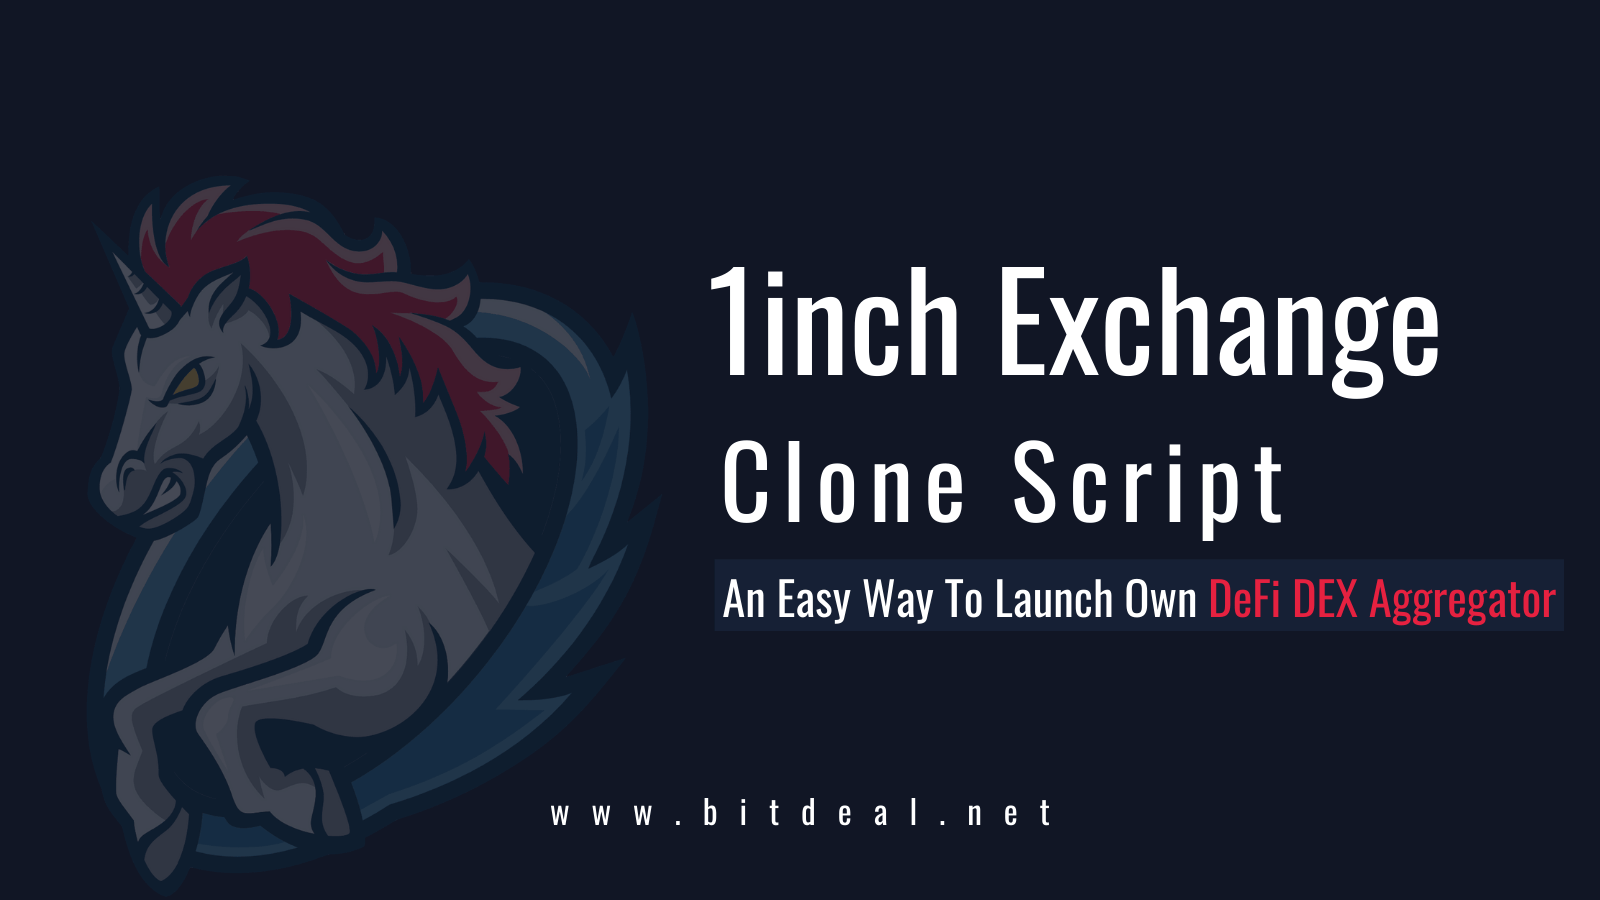 1inch Clone Script To Launch Your Own DeFi Aggregator